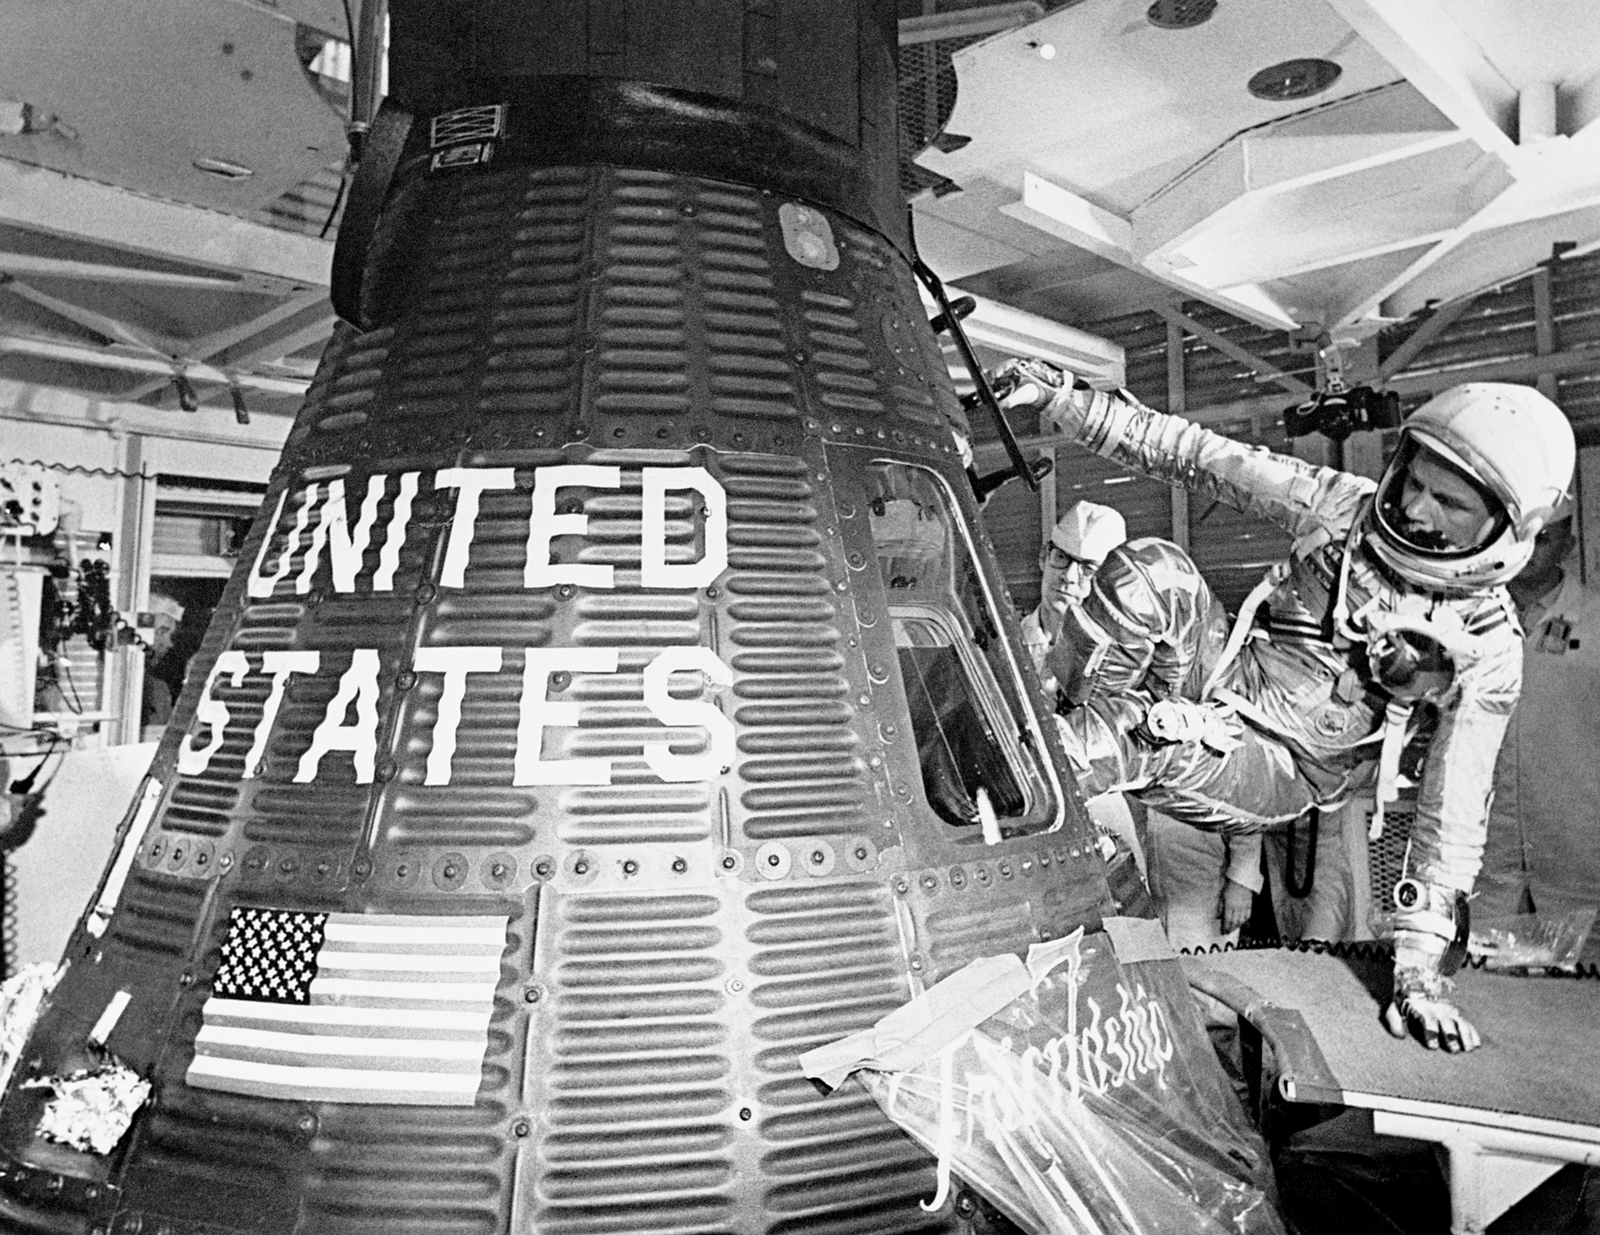 John Glenn becomes the first American to orbit Earth, 1962